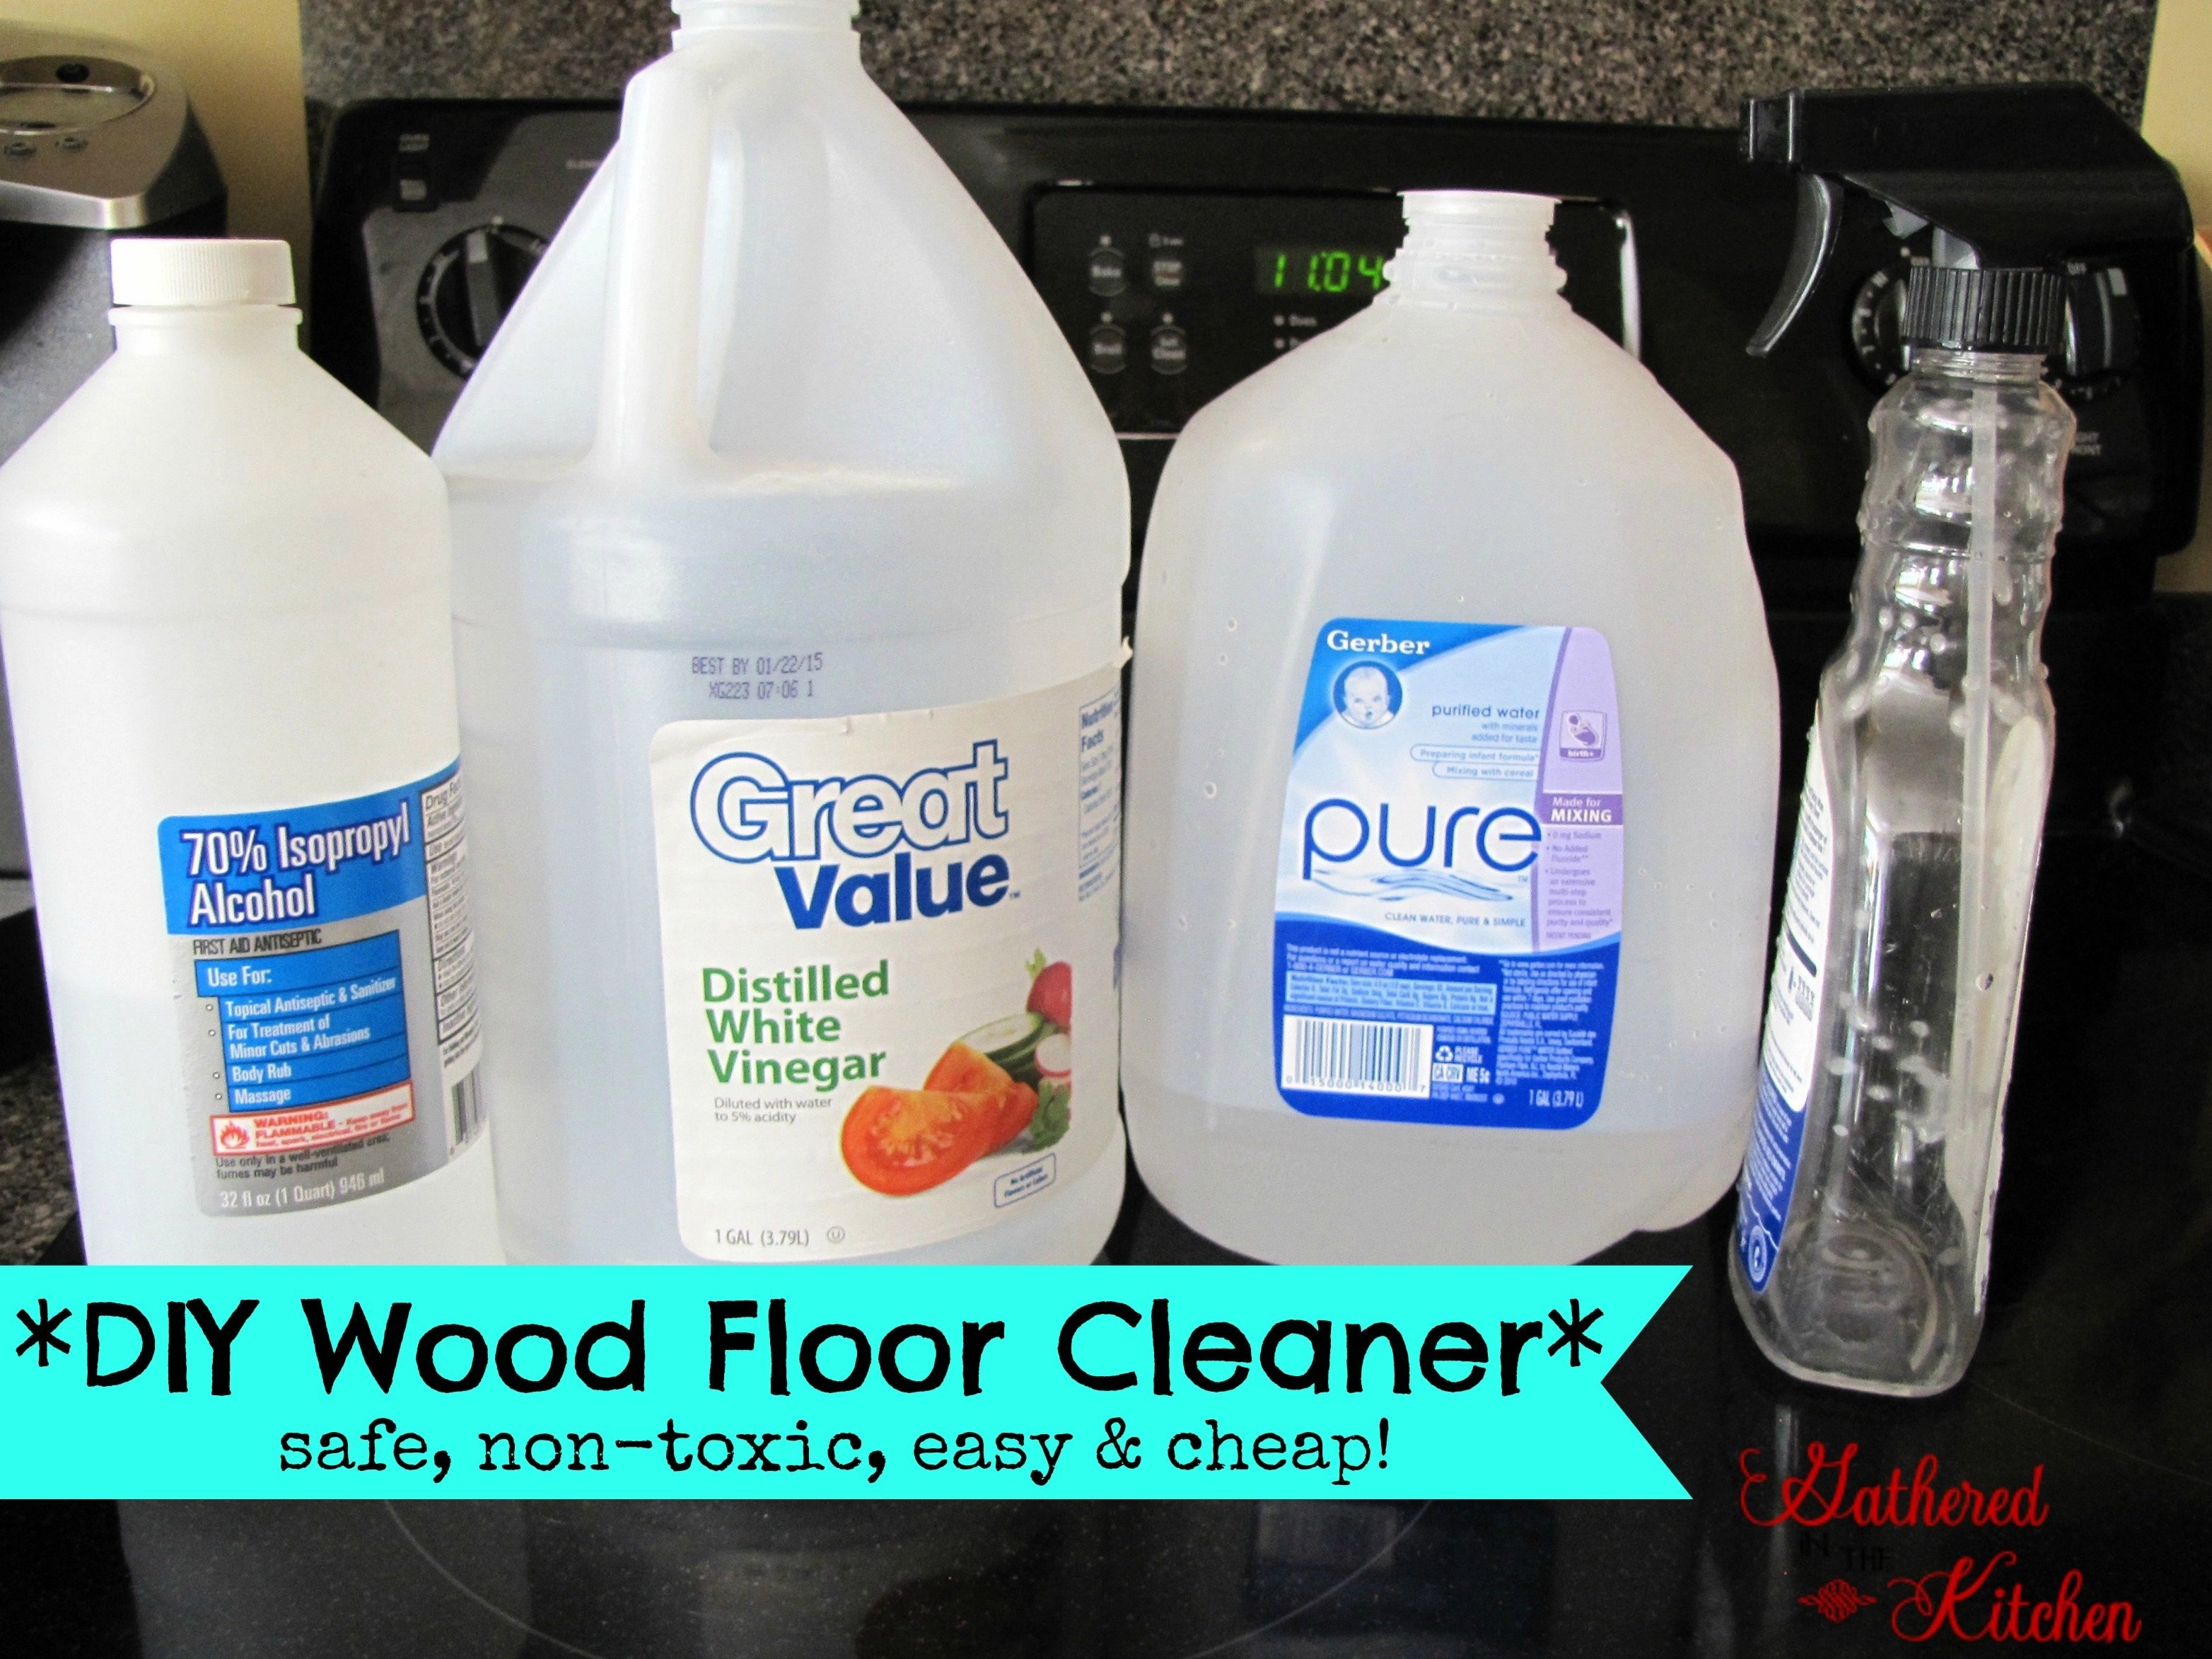 bigstock to best floors clean way cleaning the hardwood properly postings floor how wood woman distributors blog bestwaytocleanhardwoodfloors